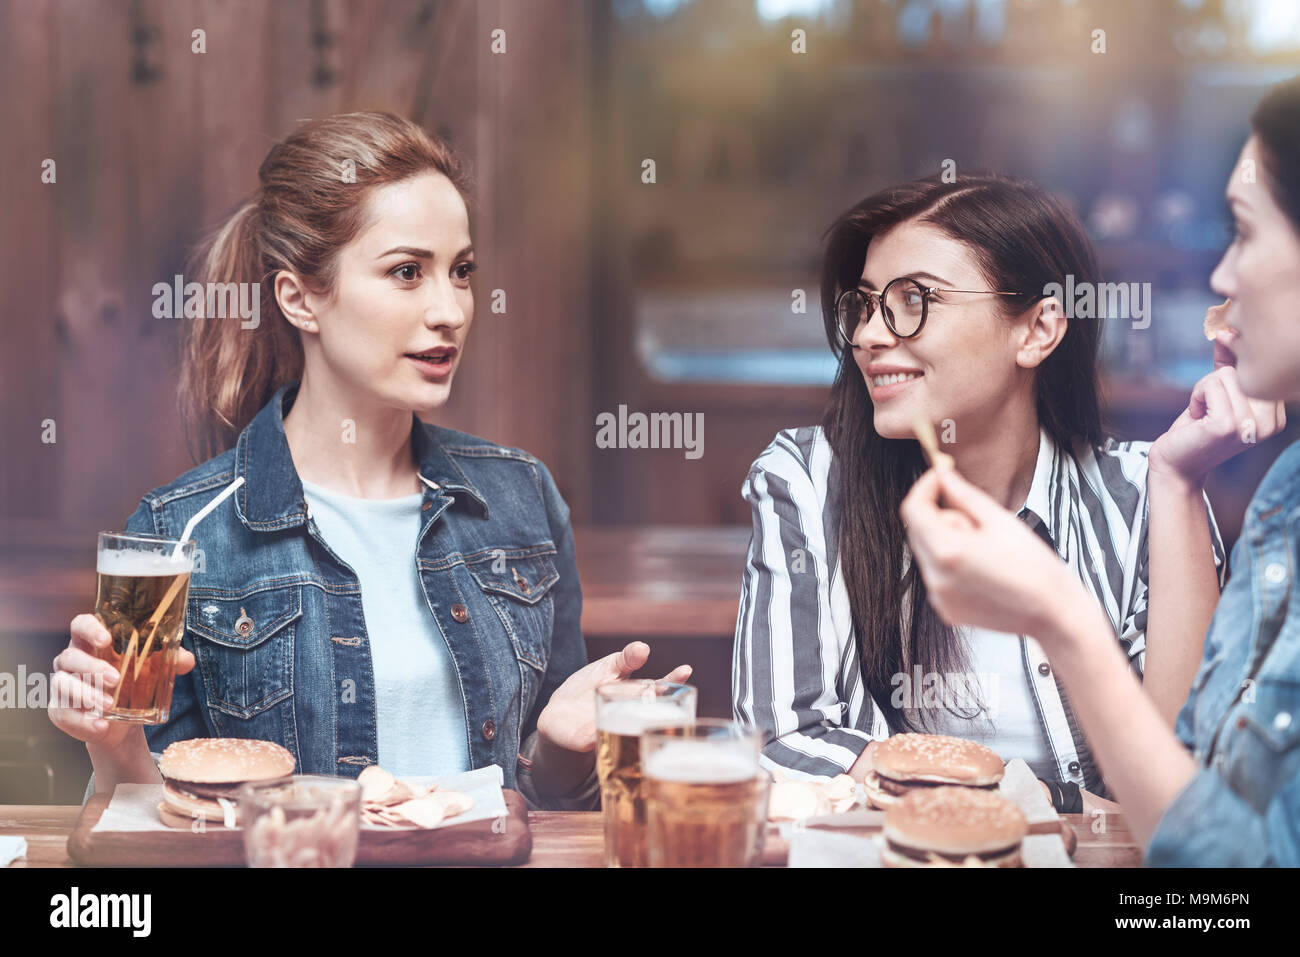 Beautiful good looking woman telling a story - Stock Image